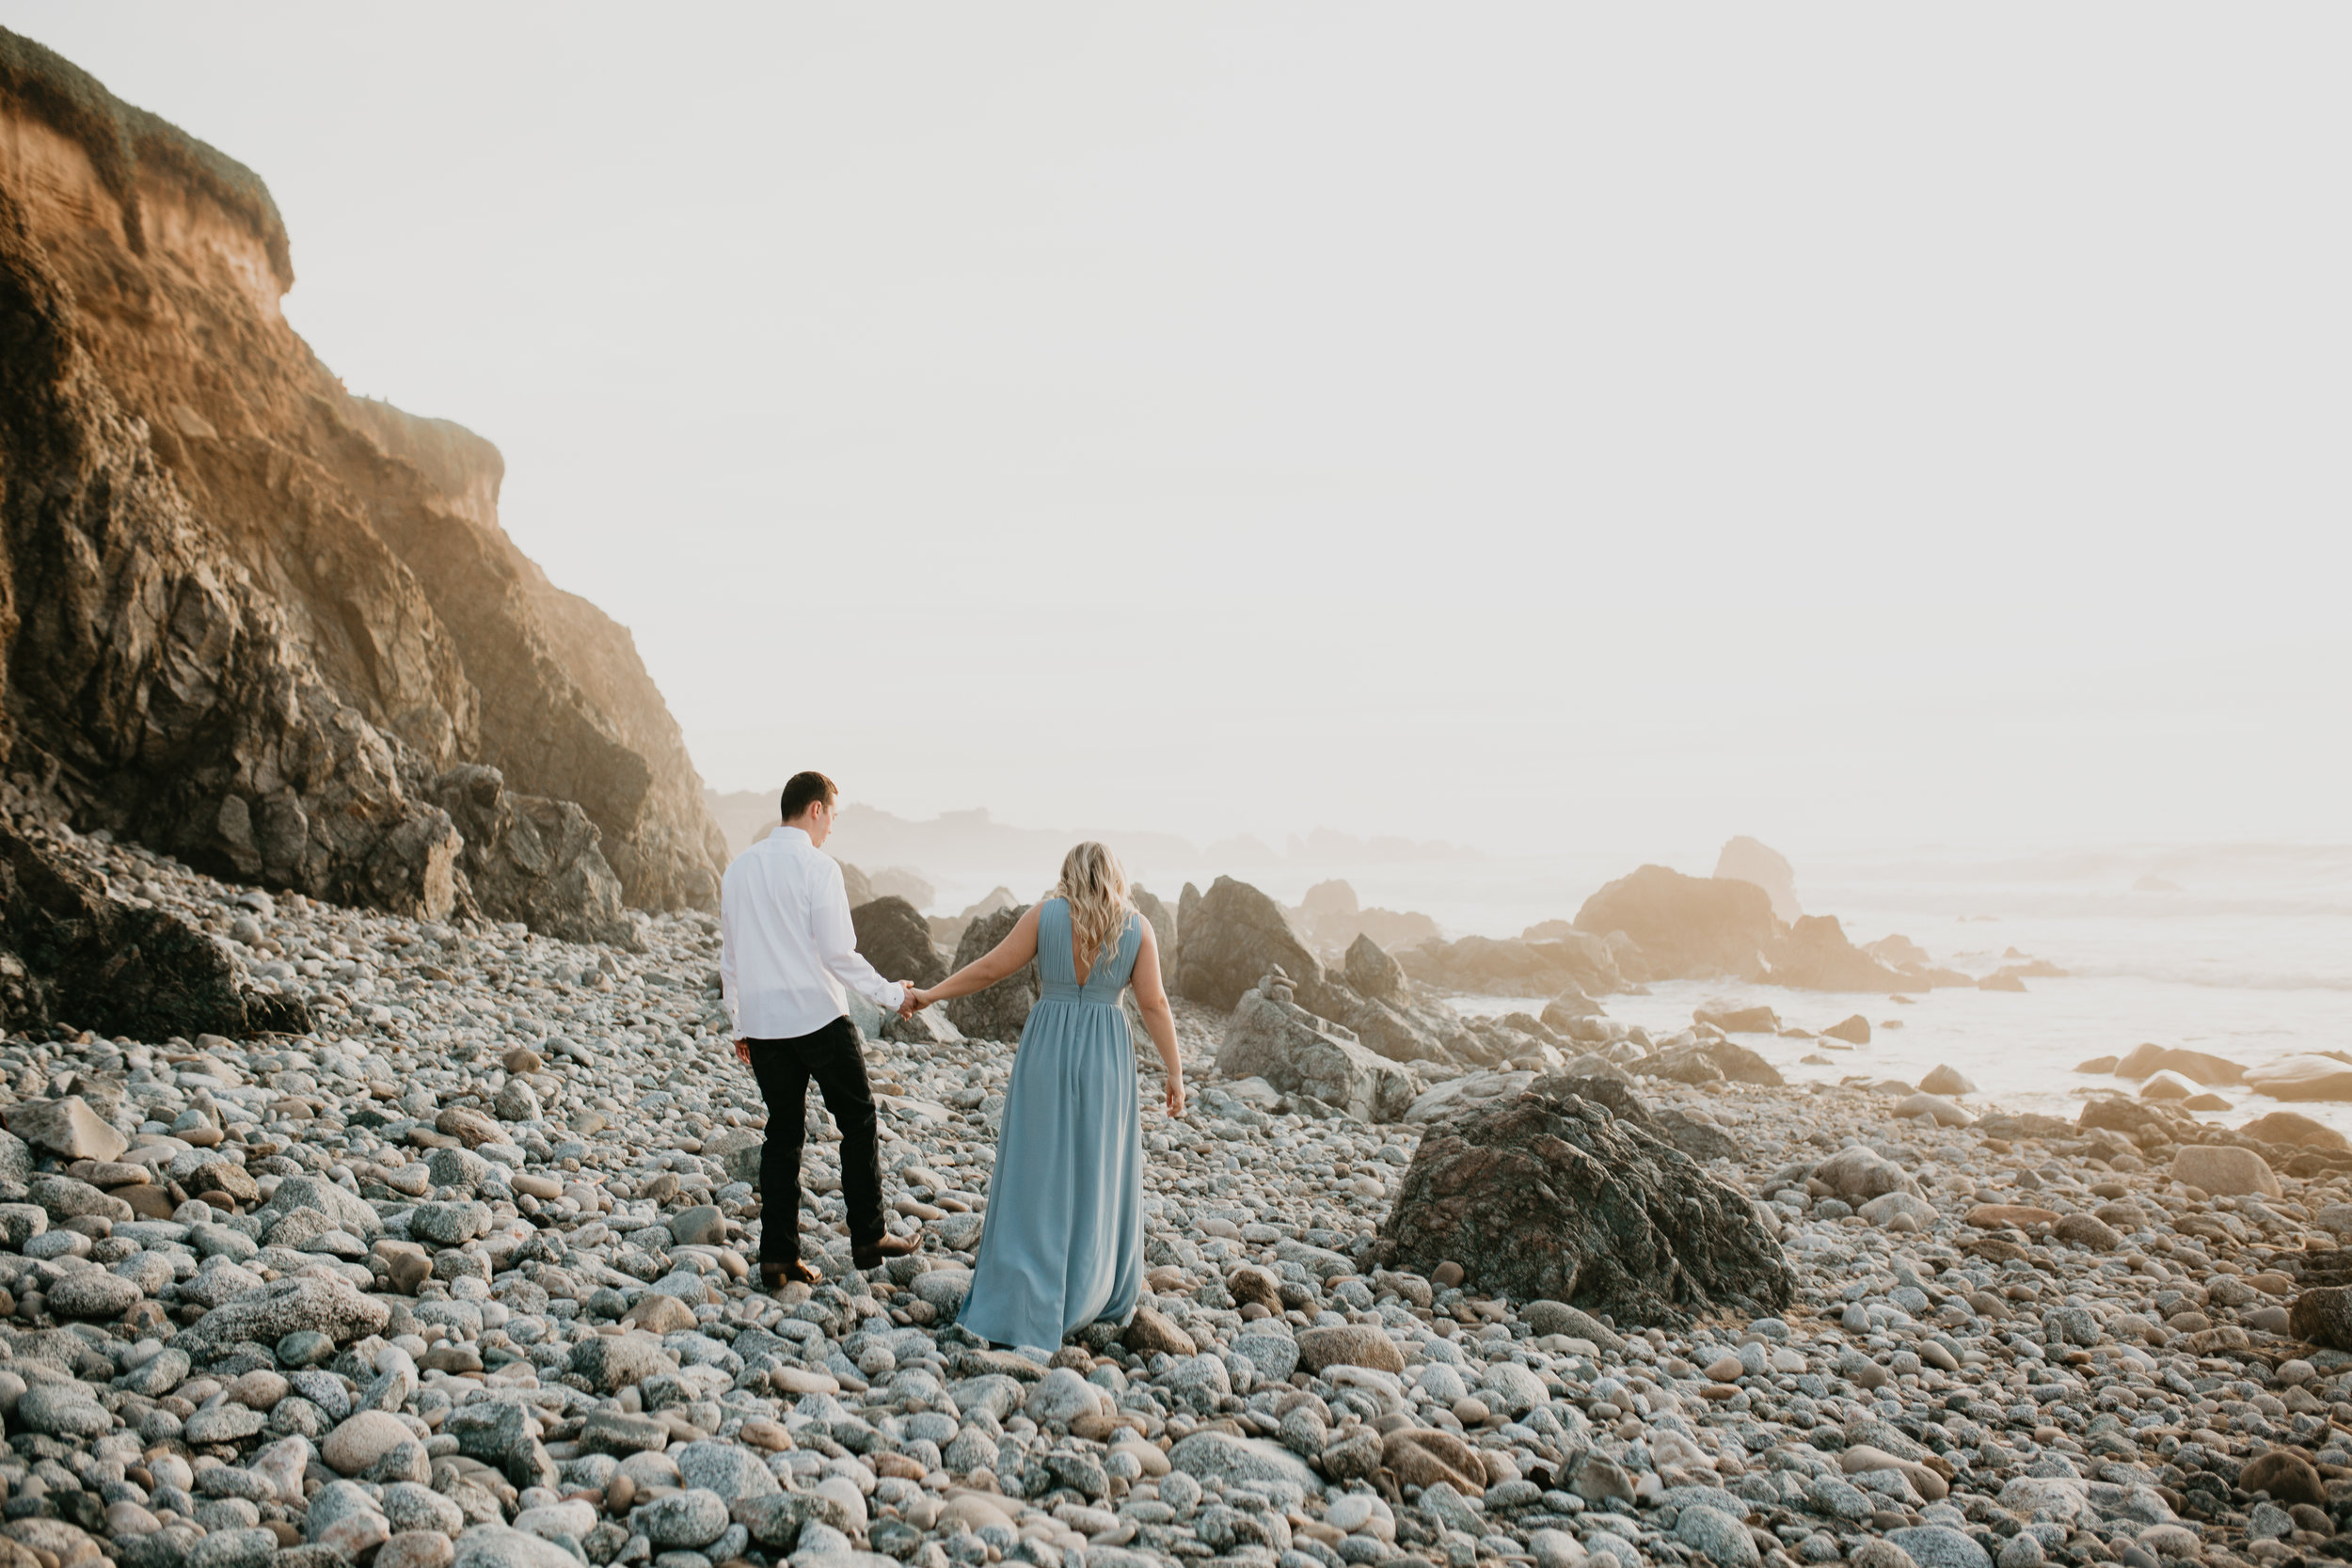 Nicole-Daacke-Photography-big-sur-garrapatta-state-park-adventurous-engagement-session-bixy-bridge-elopement-big-sur-wedding-photographer-monterey-elopement-photographer-california-golden-sunset-coast-photos-29.jpg